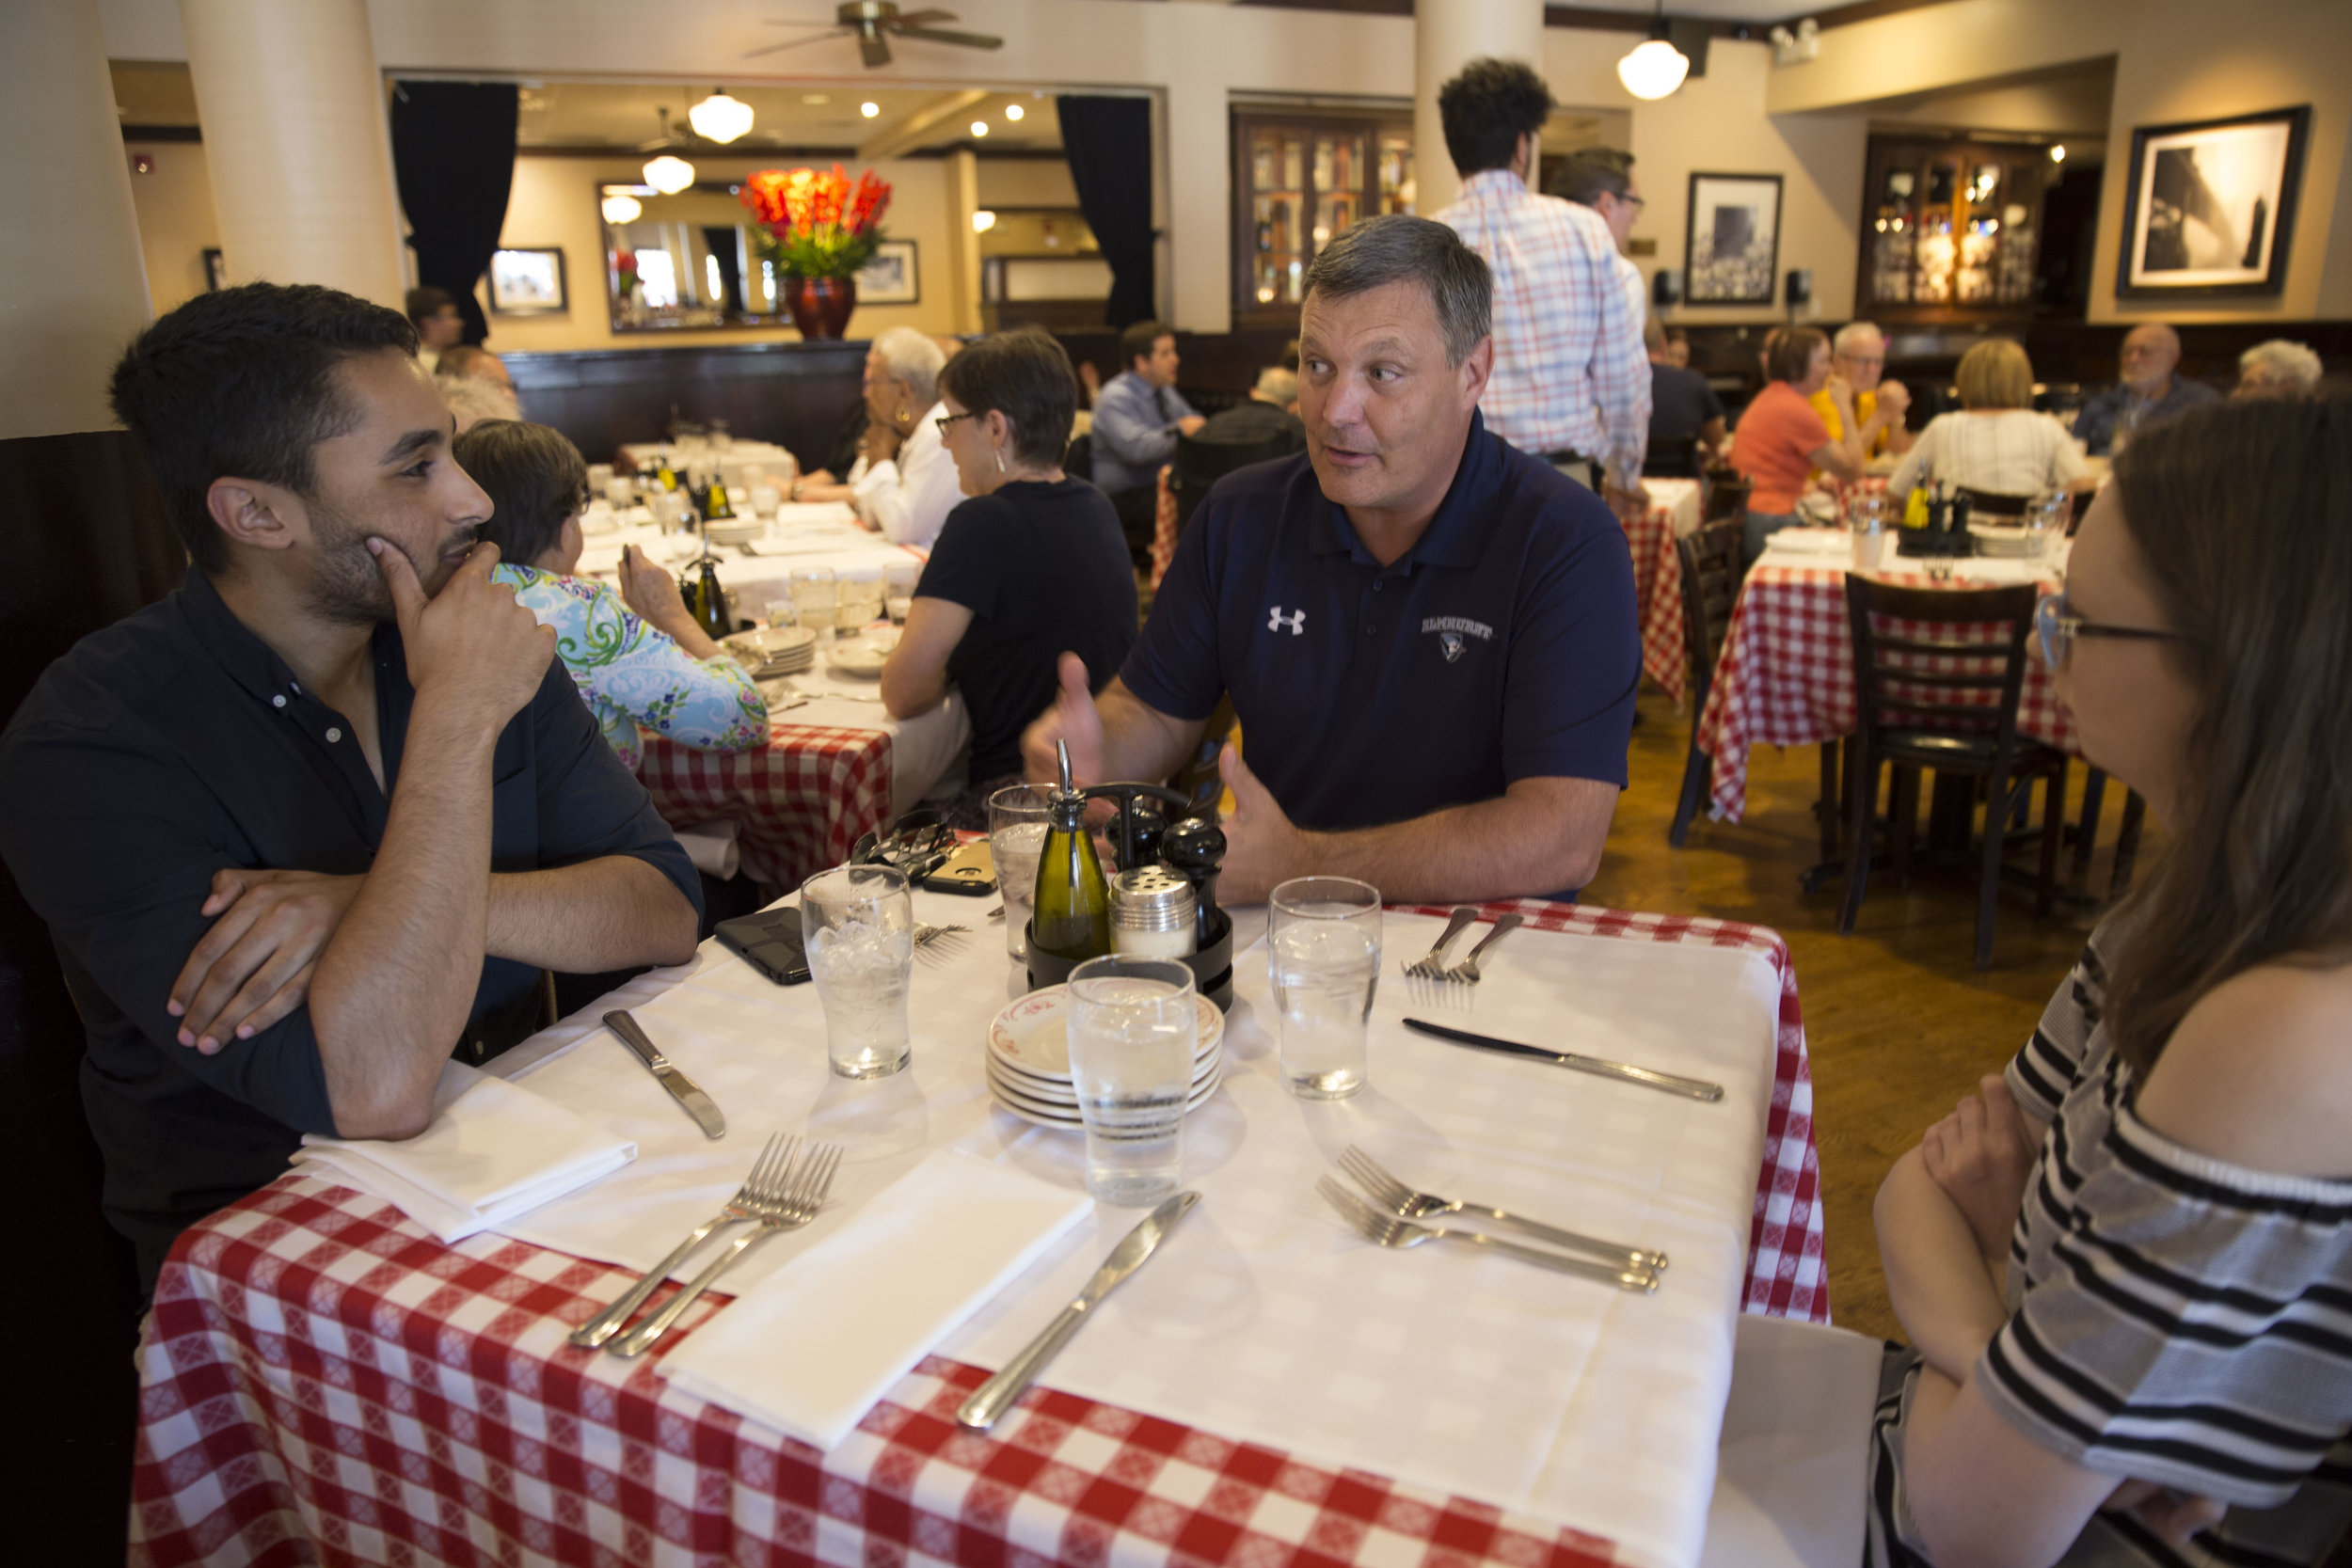 EC President Troy VanAken (middle) discusses his first year as EC's president with Leader Editor-in-Chief Kenneth Edison (left) and News Editor Victoria Martin at Maggiano's in Oak Brook on Tuesday, July 25.  Photo by Marielle Decena